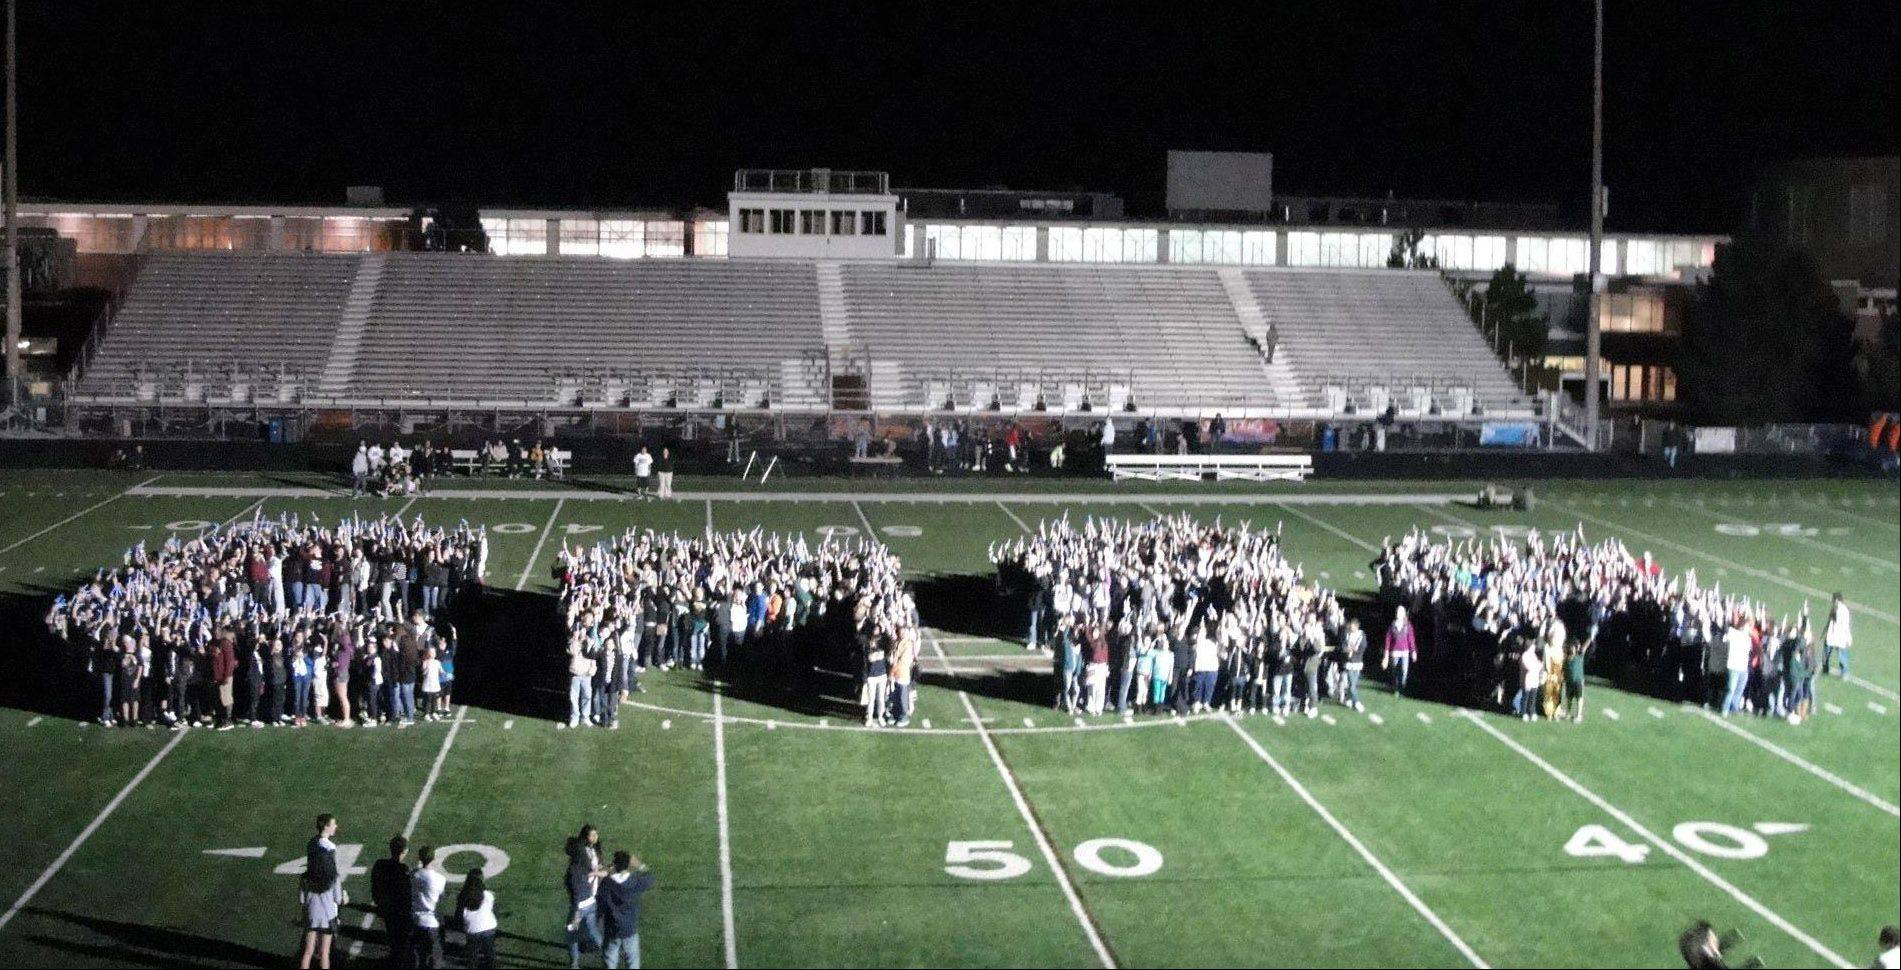 "The 826 people who formed the letters ""CASA"" on the Stevenson High School football field Saturday evening in an attempt to set the world record for largest glow stick design."